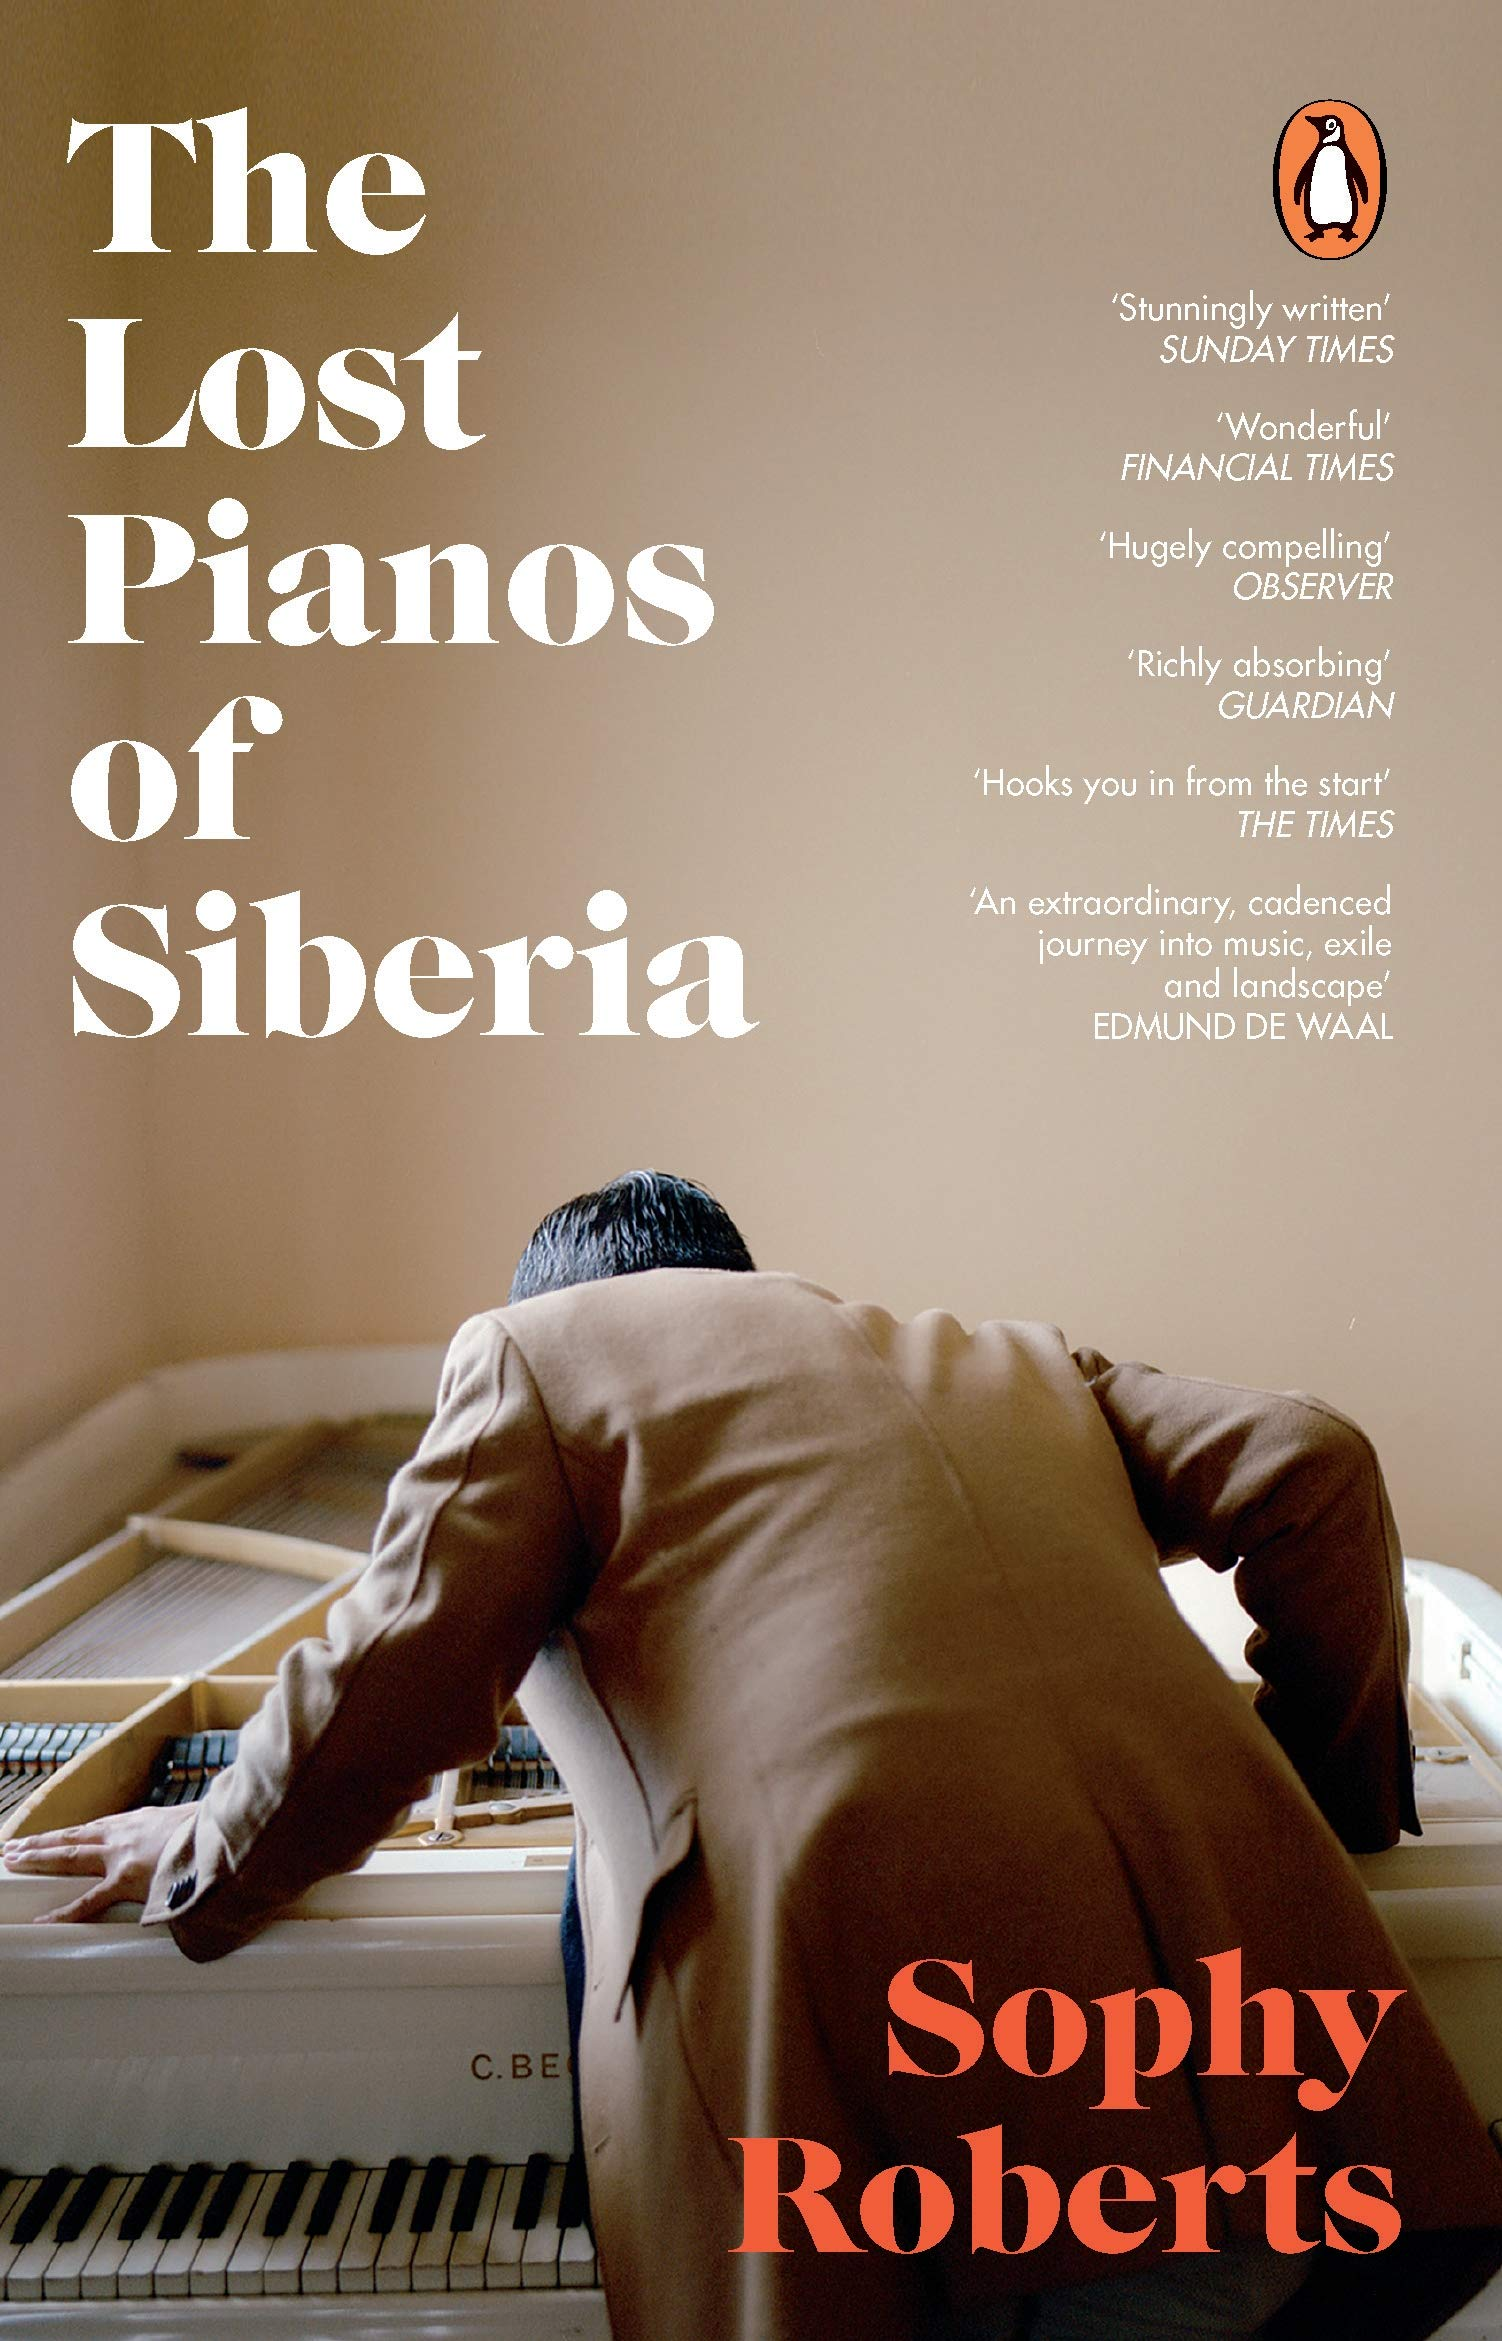 The Lost Pianos of Siberia: A Sunday Times Book of 2020 ...